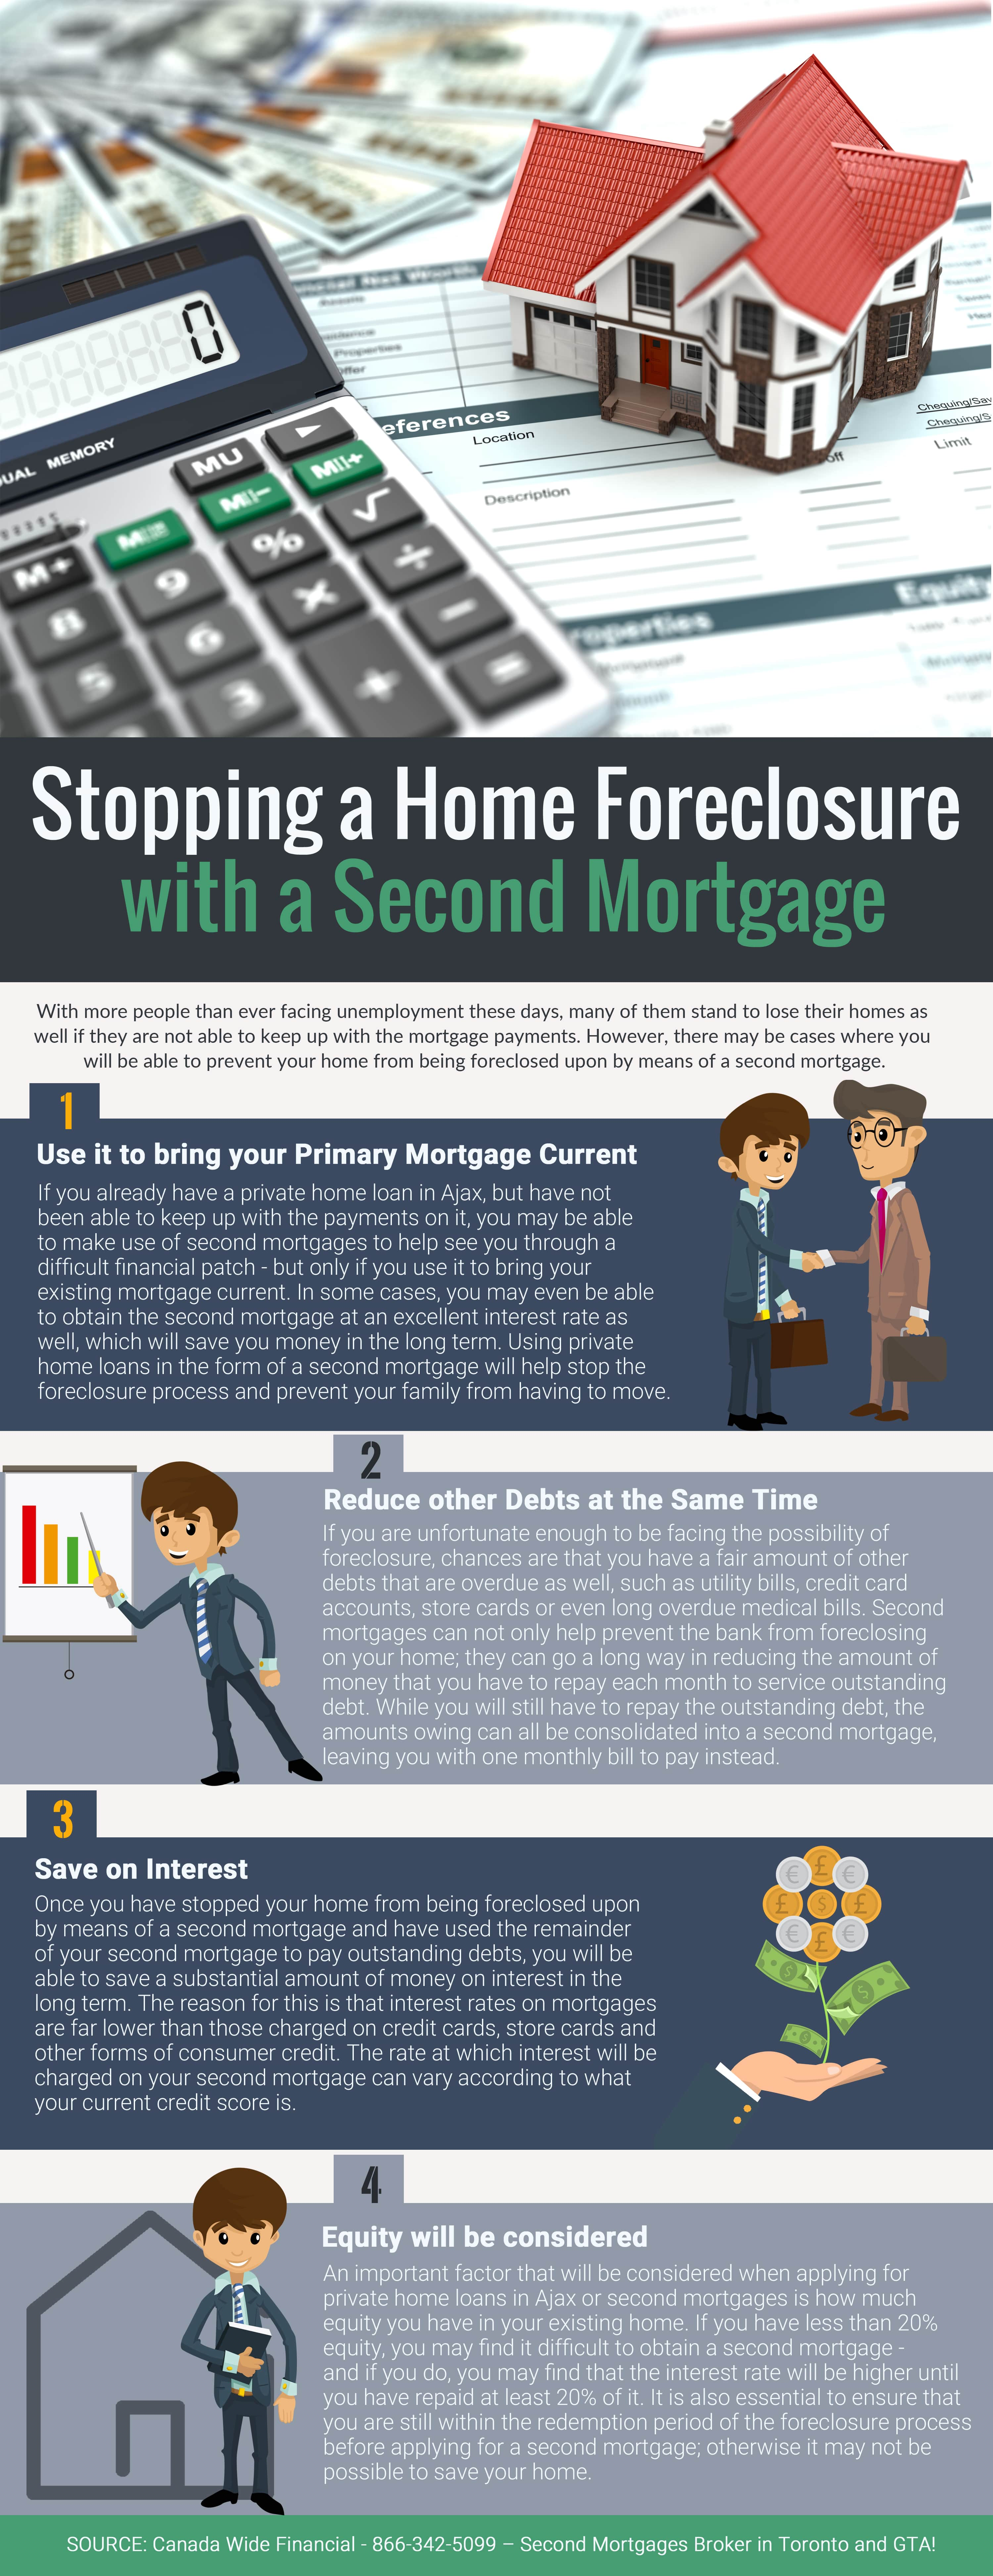 Stopping a Home Foreclosure with a Second Mortgage - Infographic